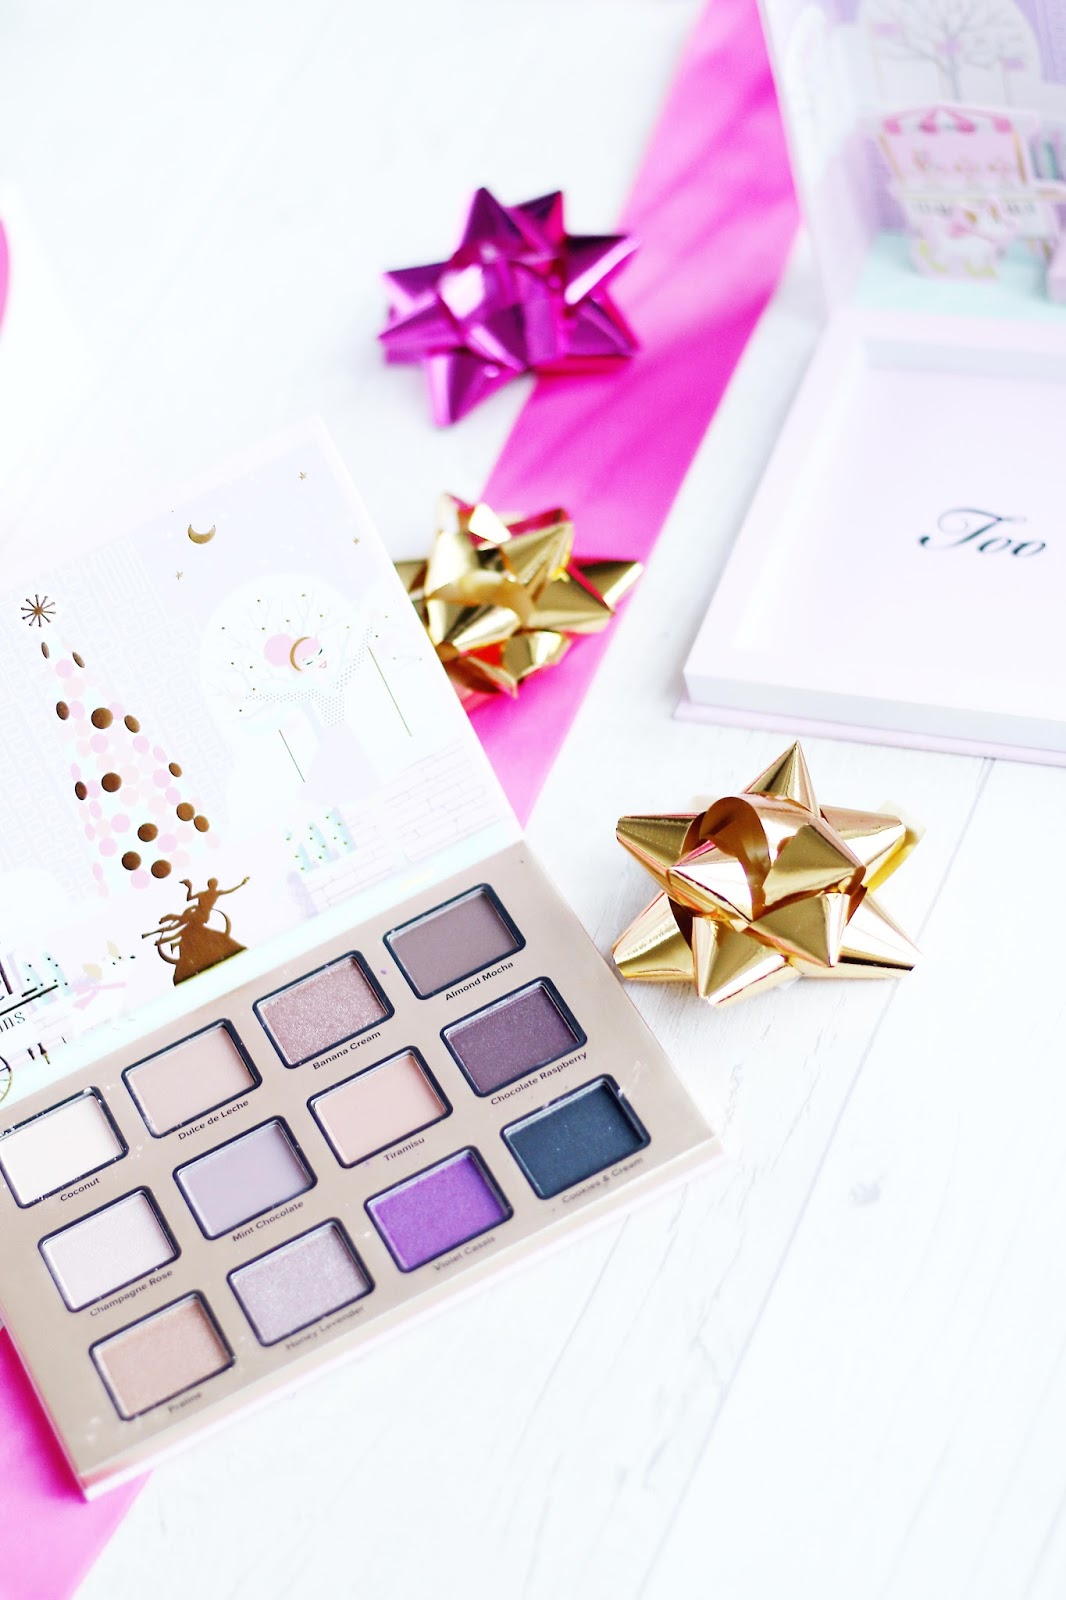 Beauty, Blogmas, Christmas, Gift Guide, Christmas gift guide, Shopping, things to buy people, what to buy people for Christmas, beauty presents, Charlotte Tilbury, Too Faced, Luxury Christmas gift Guide, Teen gift guide, what to buy teens for Christmas, presents for your girlfriend, presents for your wife